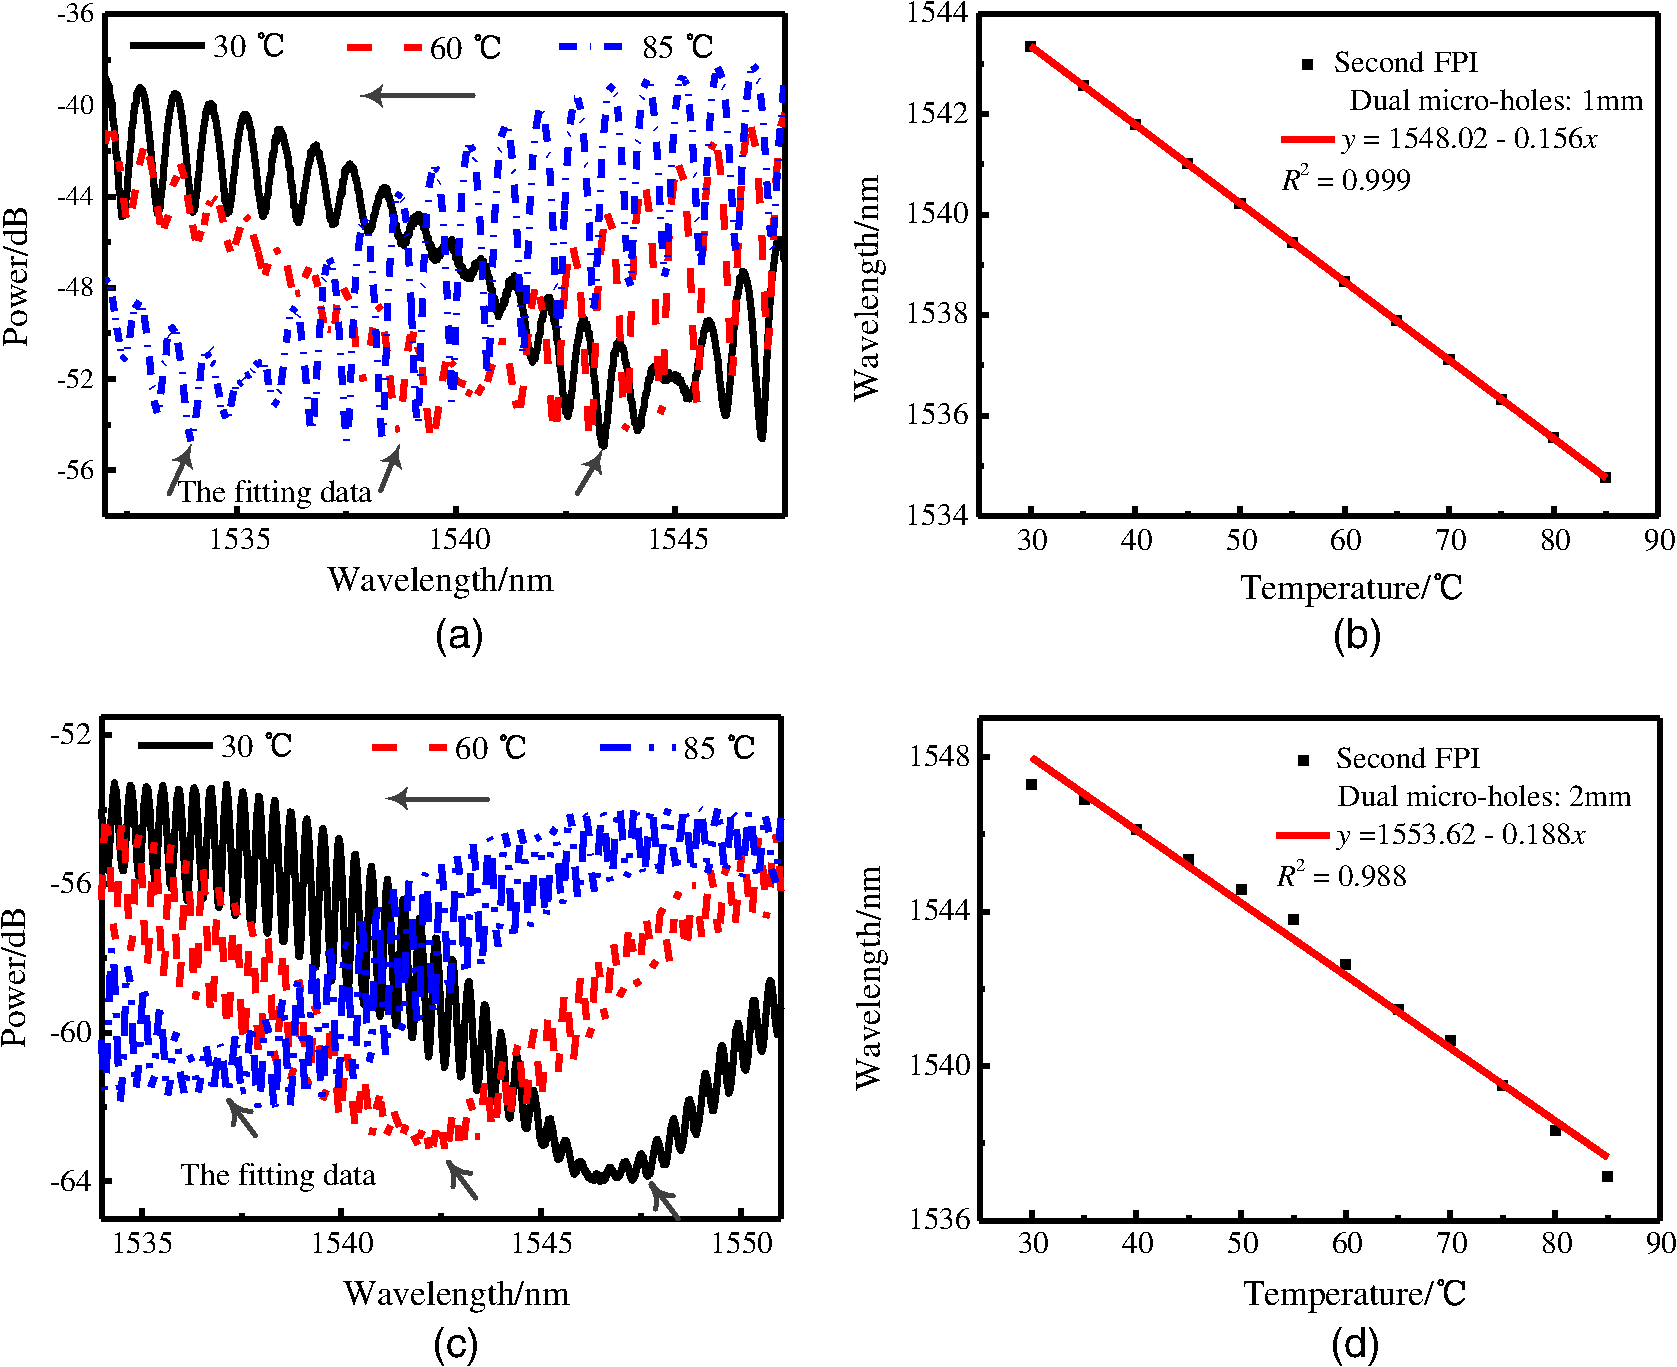 Temperature Dependence Of Microhole Based Fiber Fabryperot Figure 1 Optical Switches Sensors 1a Shows A Is Mm C Spectra Sensor In Water Distance Between Microholes 2 And D Fitting Curve Wavelength Shifts Versus Change